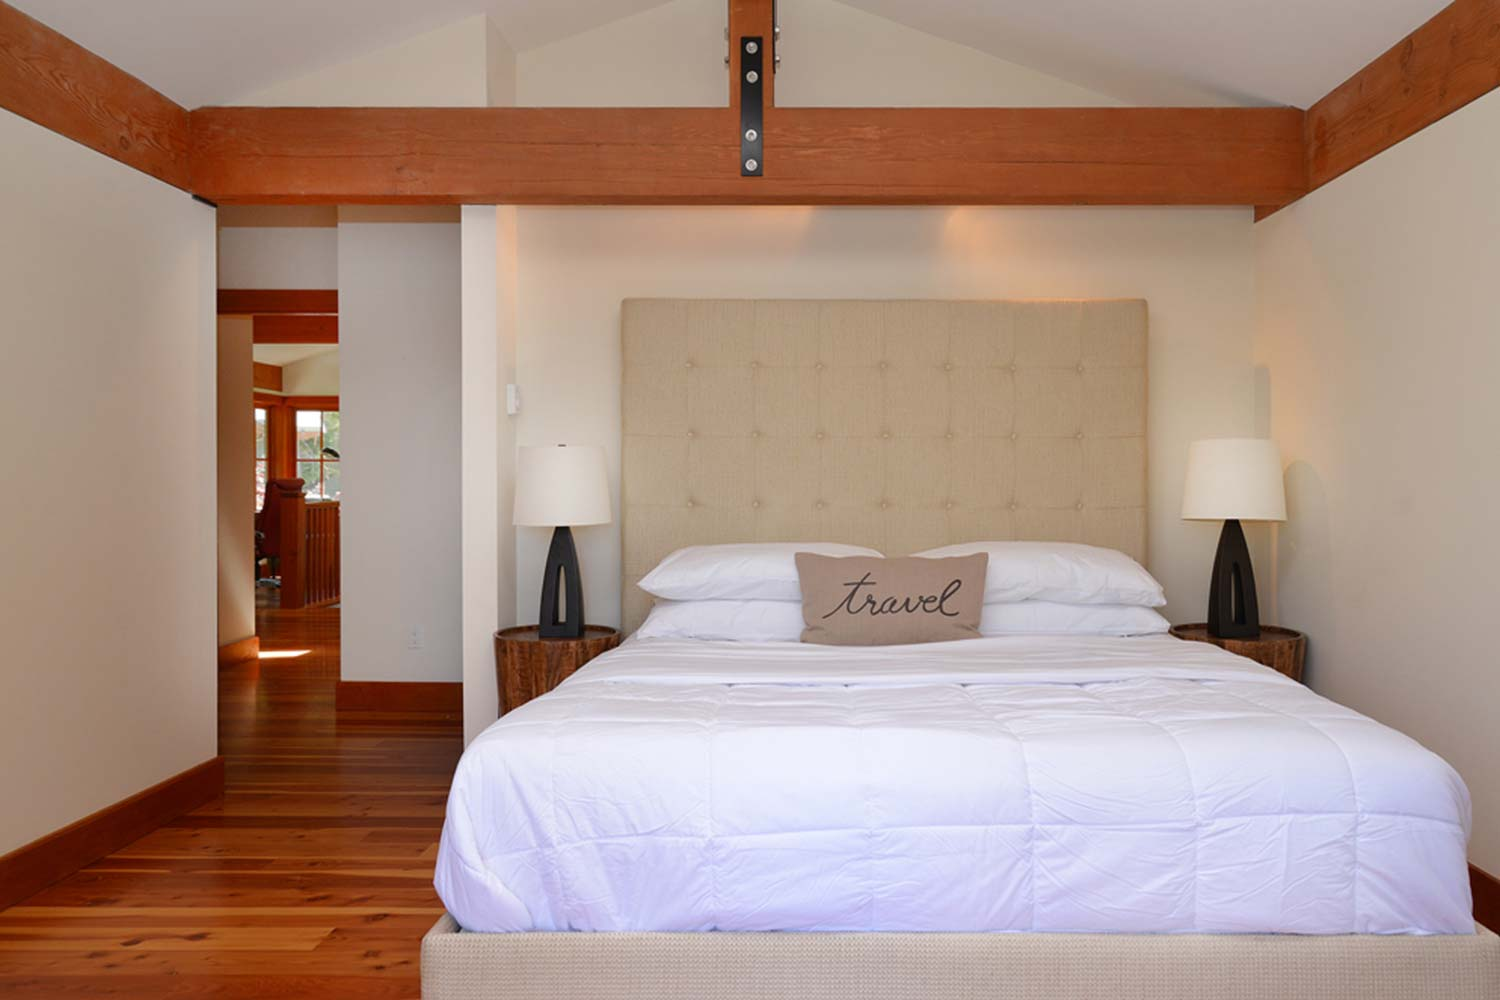 The bed in the master bedroom of this vacation luxury home has quality linen and a pillow that says Travel in the center.